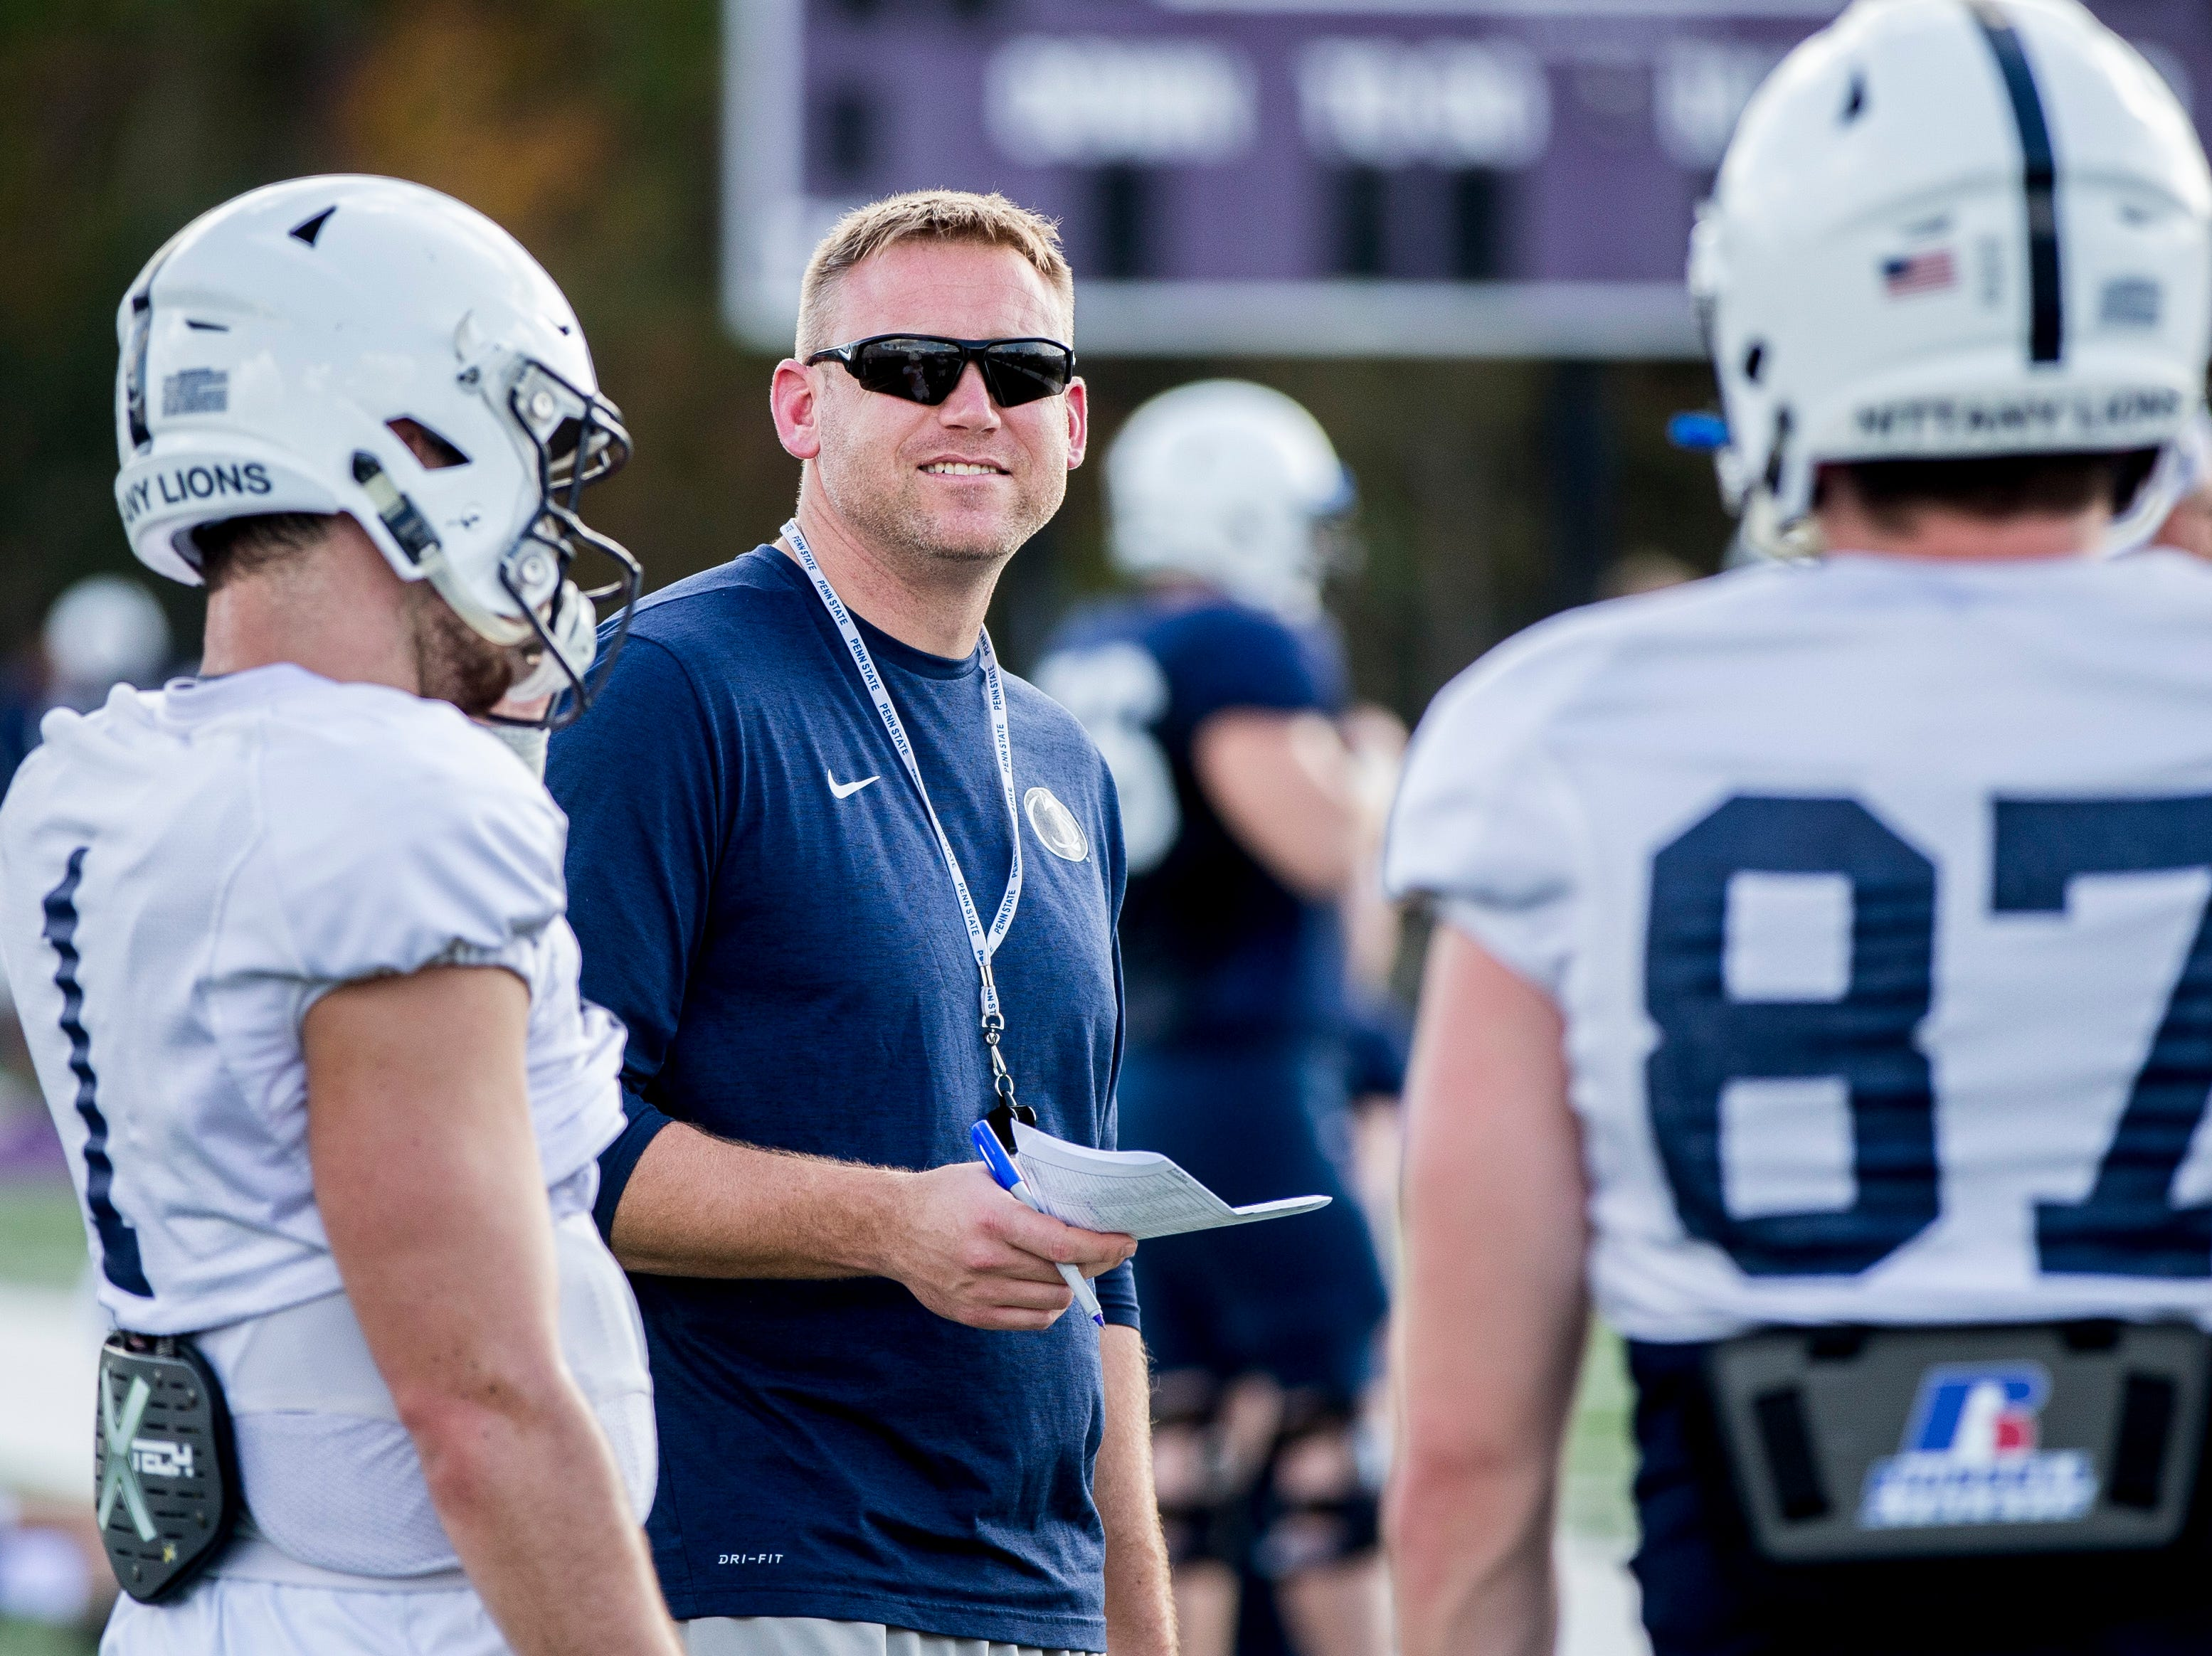 Penn State offensive coordinator Ricky Rahne talks with quarterback Trace McSorley during practice for the Citrus Bowl, Sunday, Dec. 30, 2018 in Orlando, Fla. Penn State plays Kentucky in the Citrus Bowl on Tuesday, Jan. 1, 2019. (Joe Hermitt/The Patriot-News via AP)